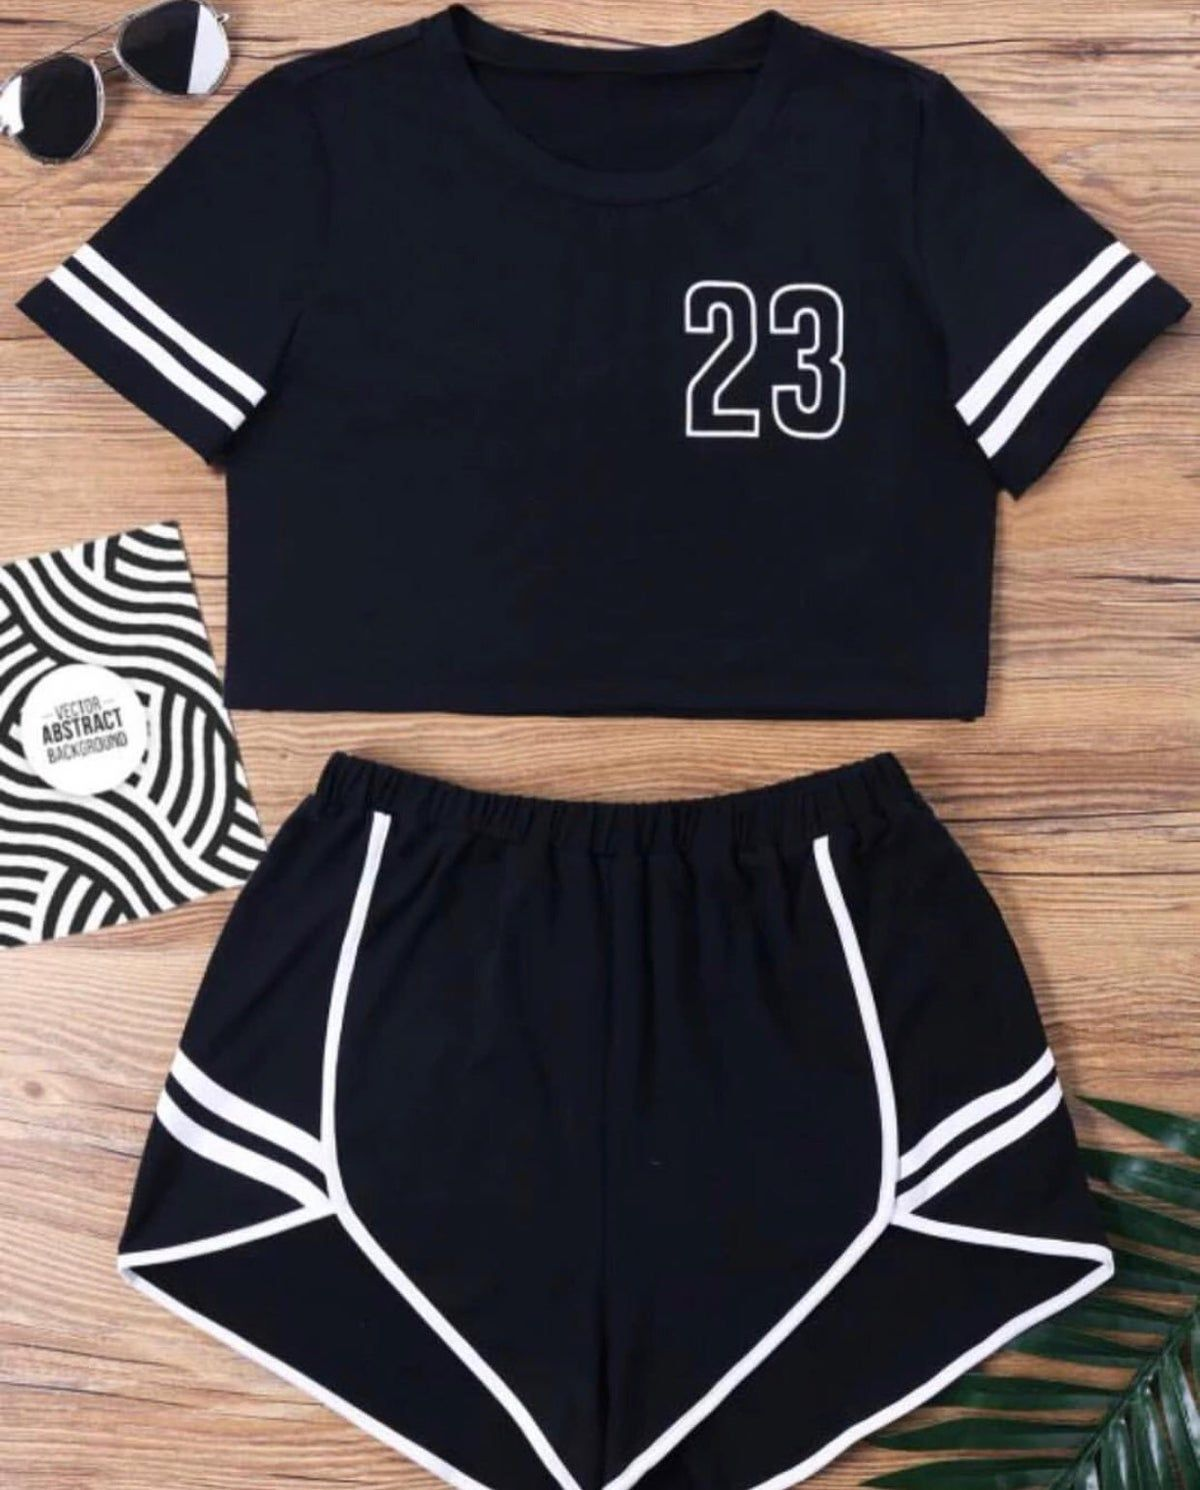 JESPER Women Cute Casual Summer Letter Print Short Sleeve Tees Top and Shorts Sporty Set